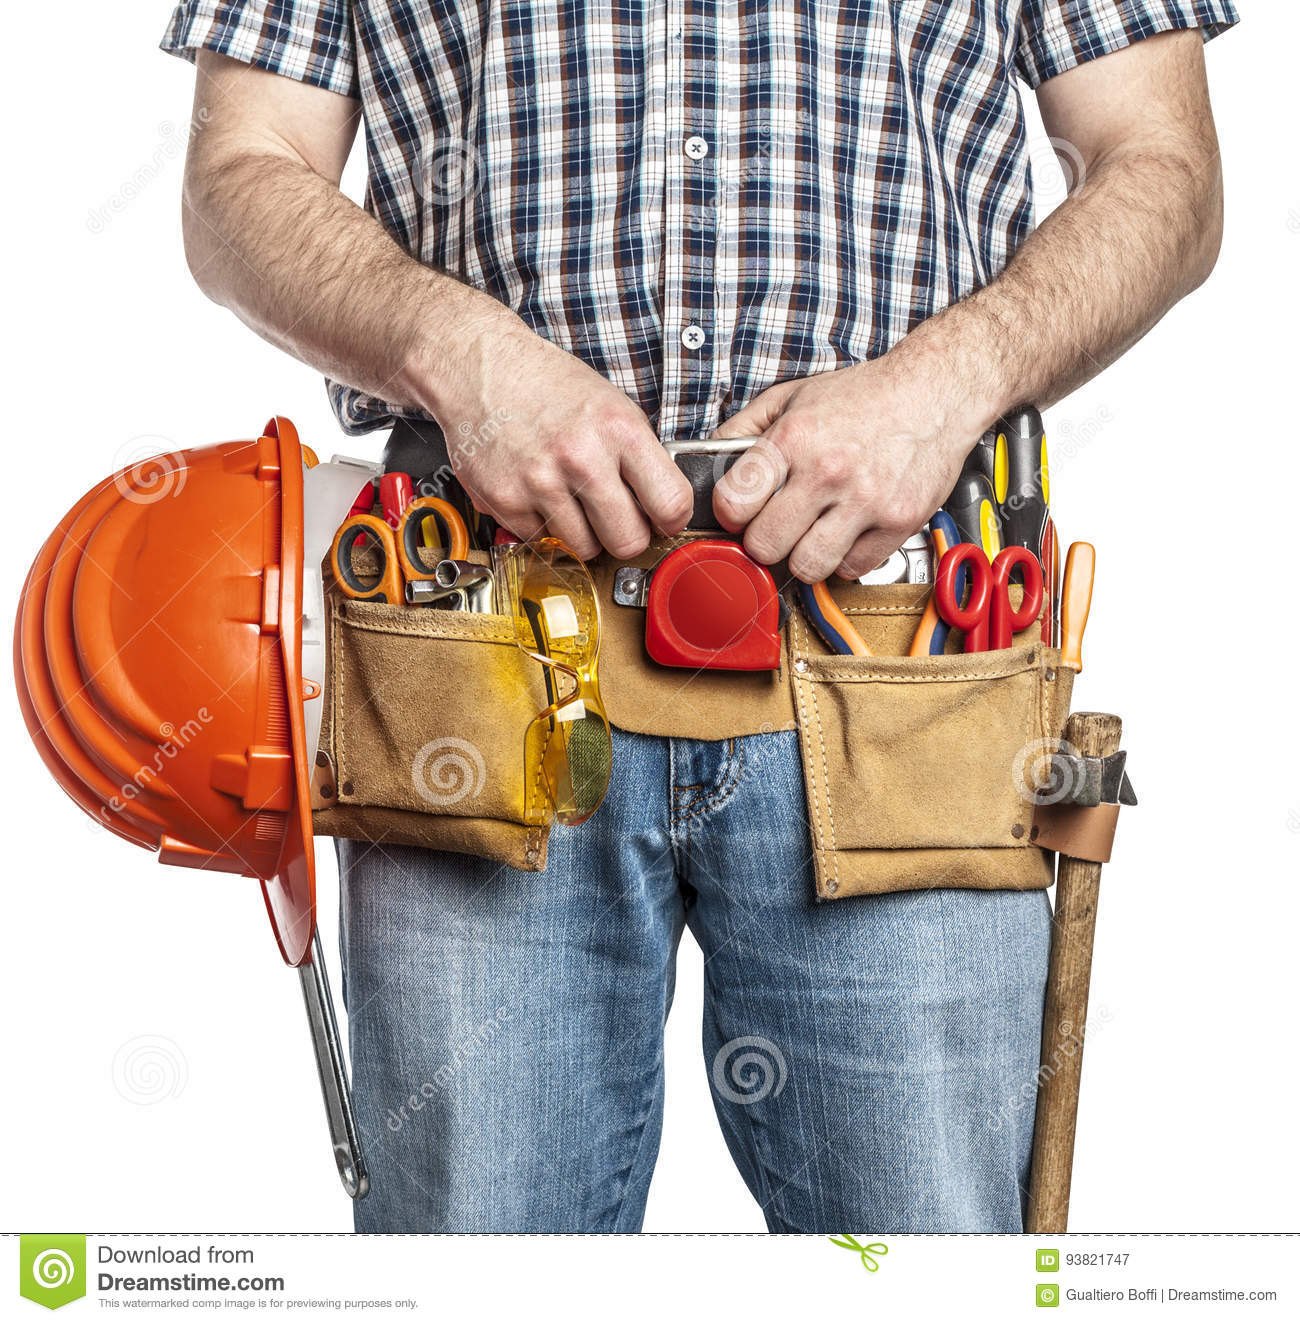 Handyman Tools Stock Images - Download 32,386 Royalty Free ...